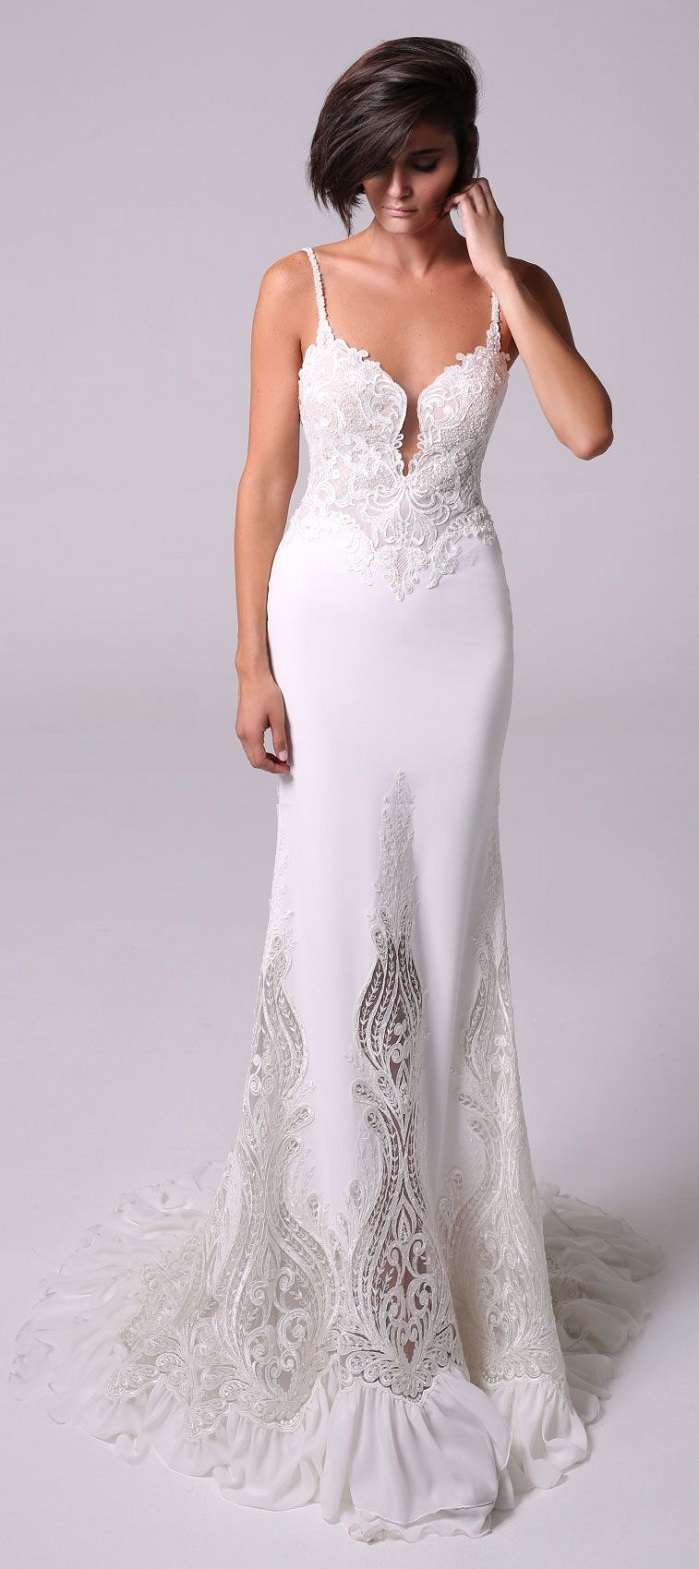 Michal Medina 2018 Wedding Dresses